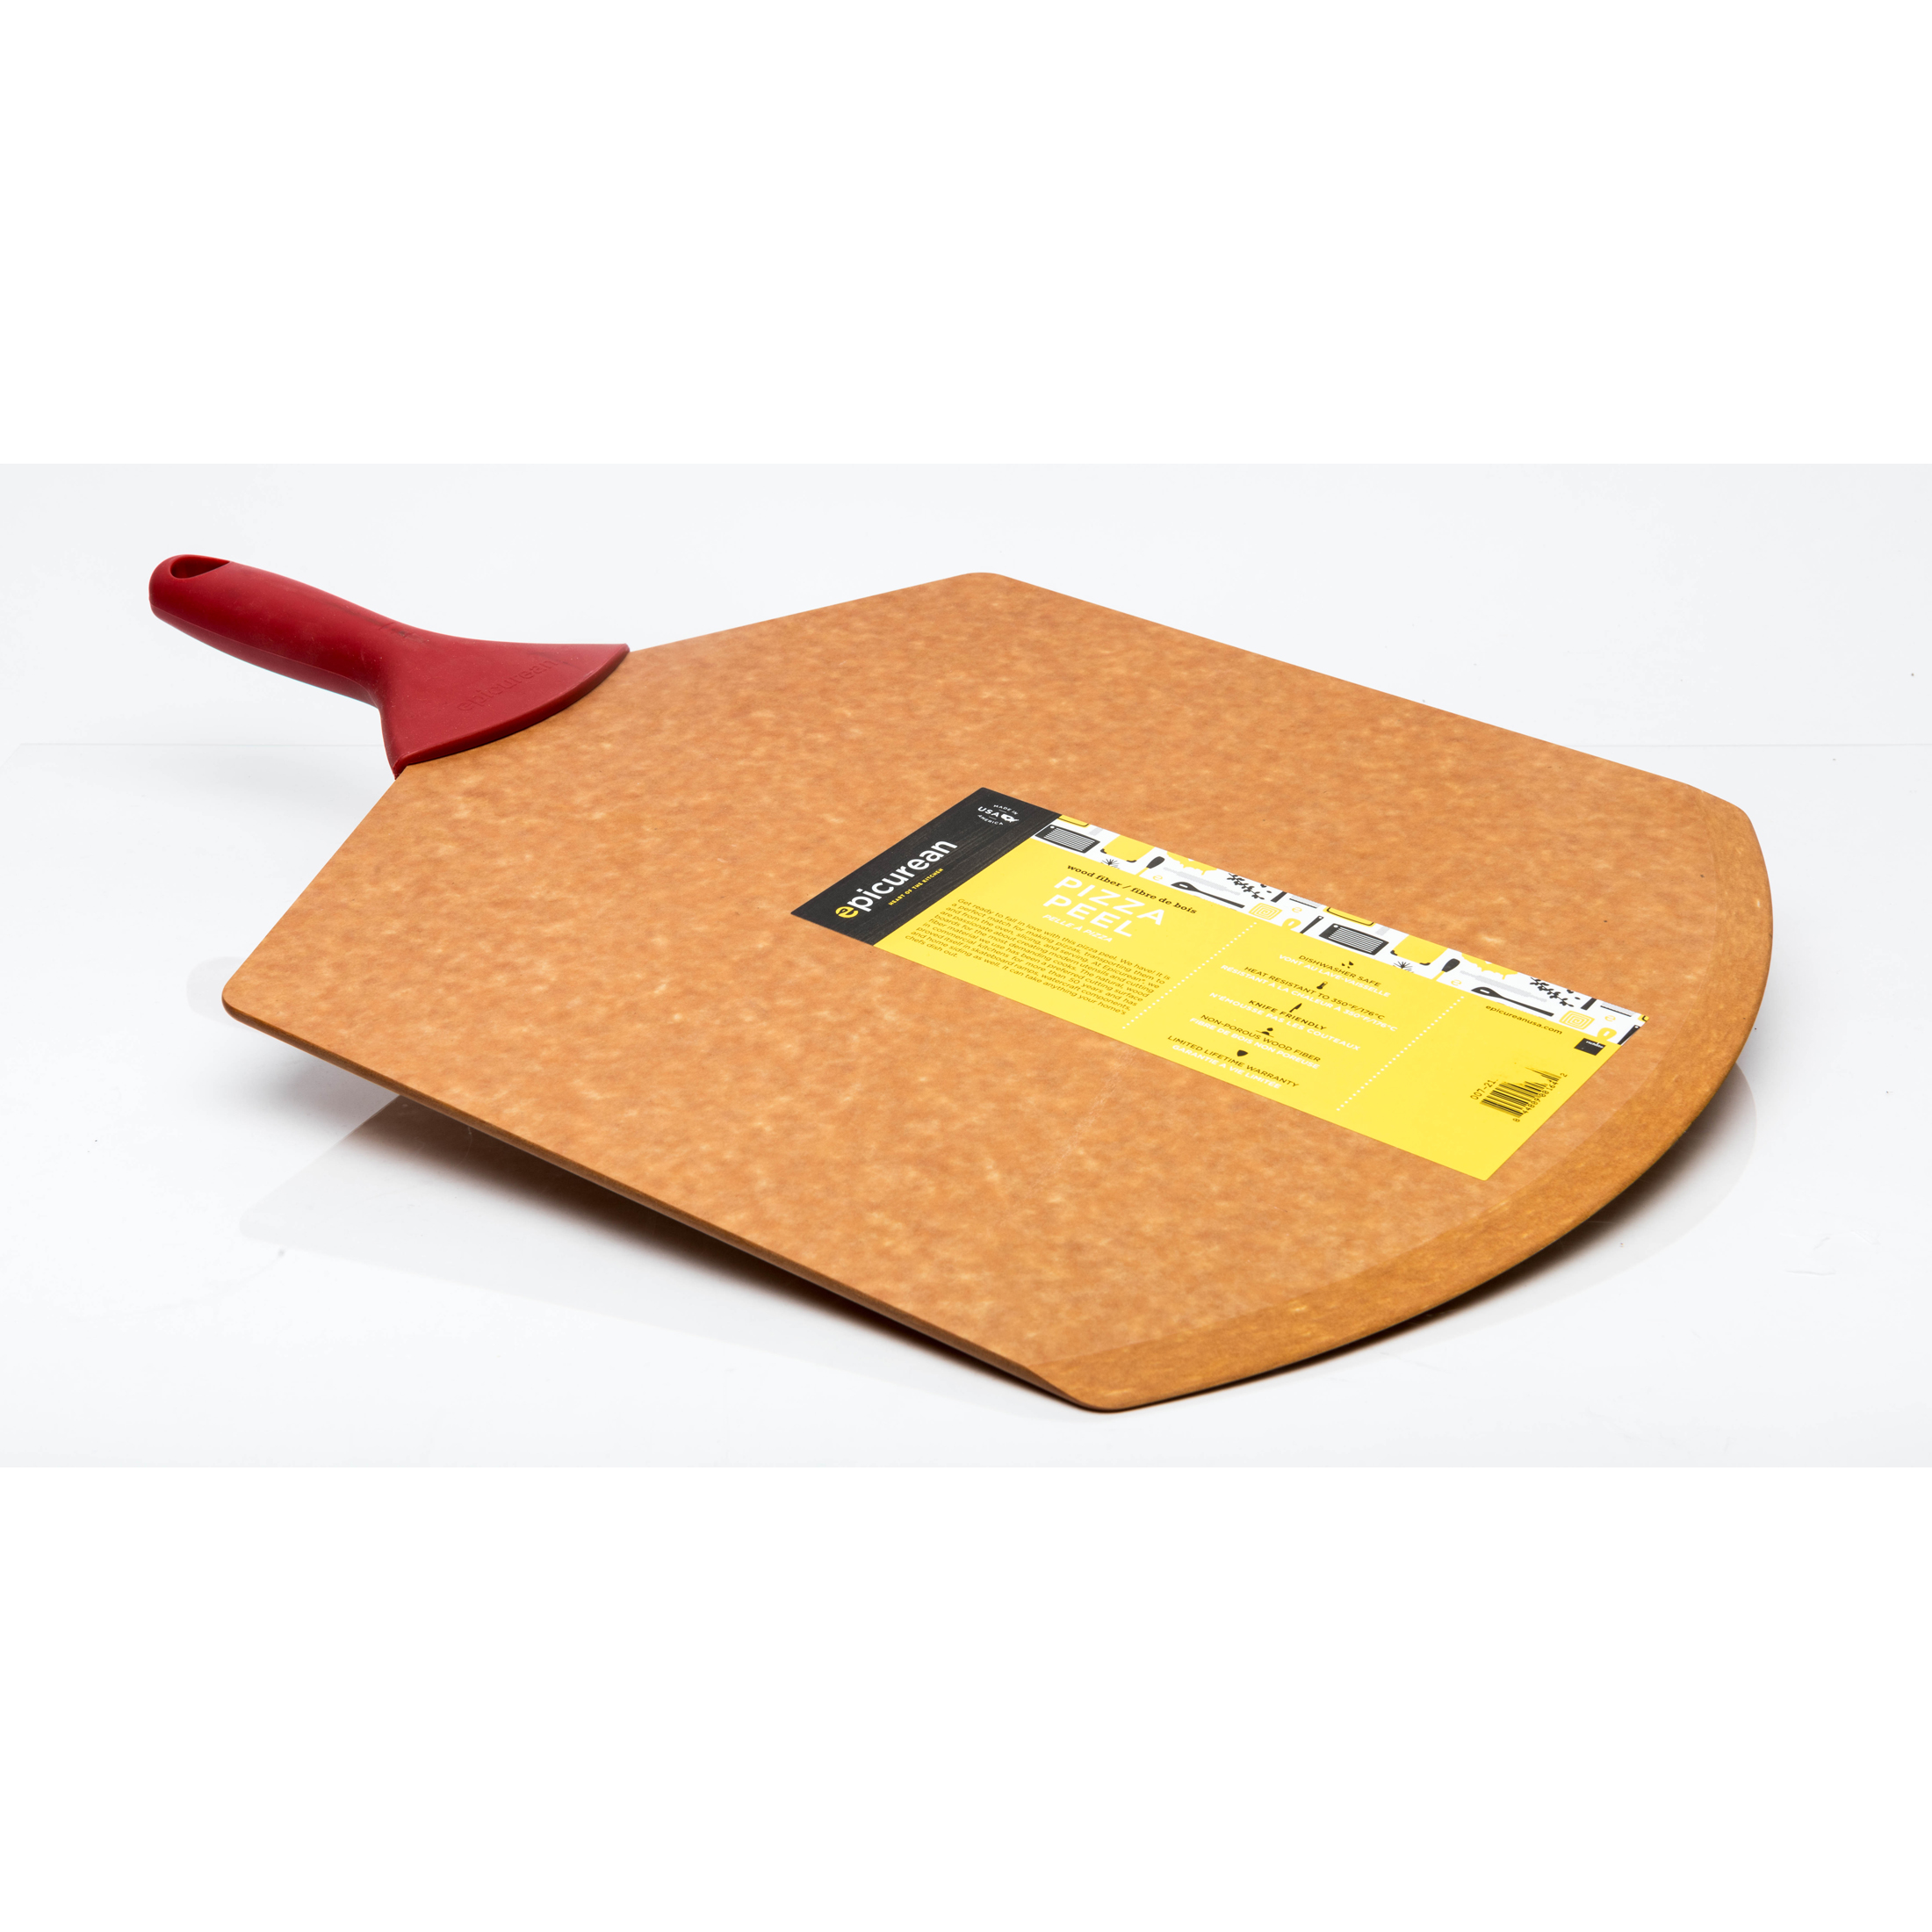 GOURMET LARGE PIZZA PEEL NATURAL & RED HANDLE